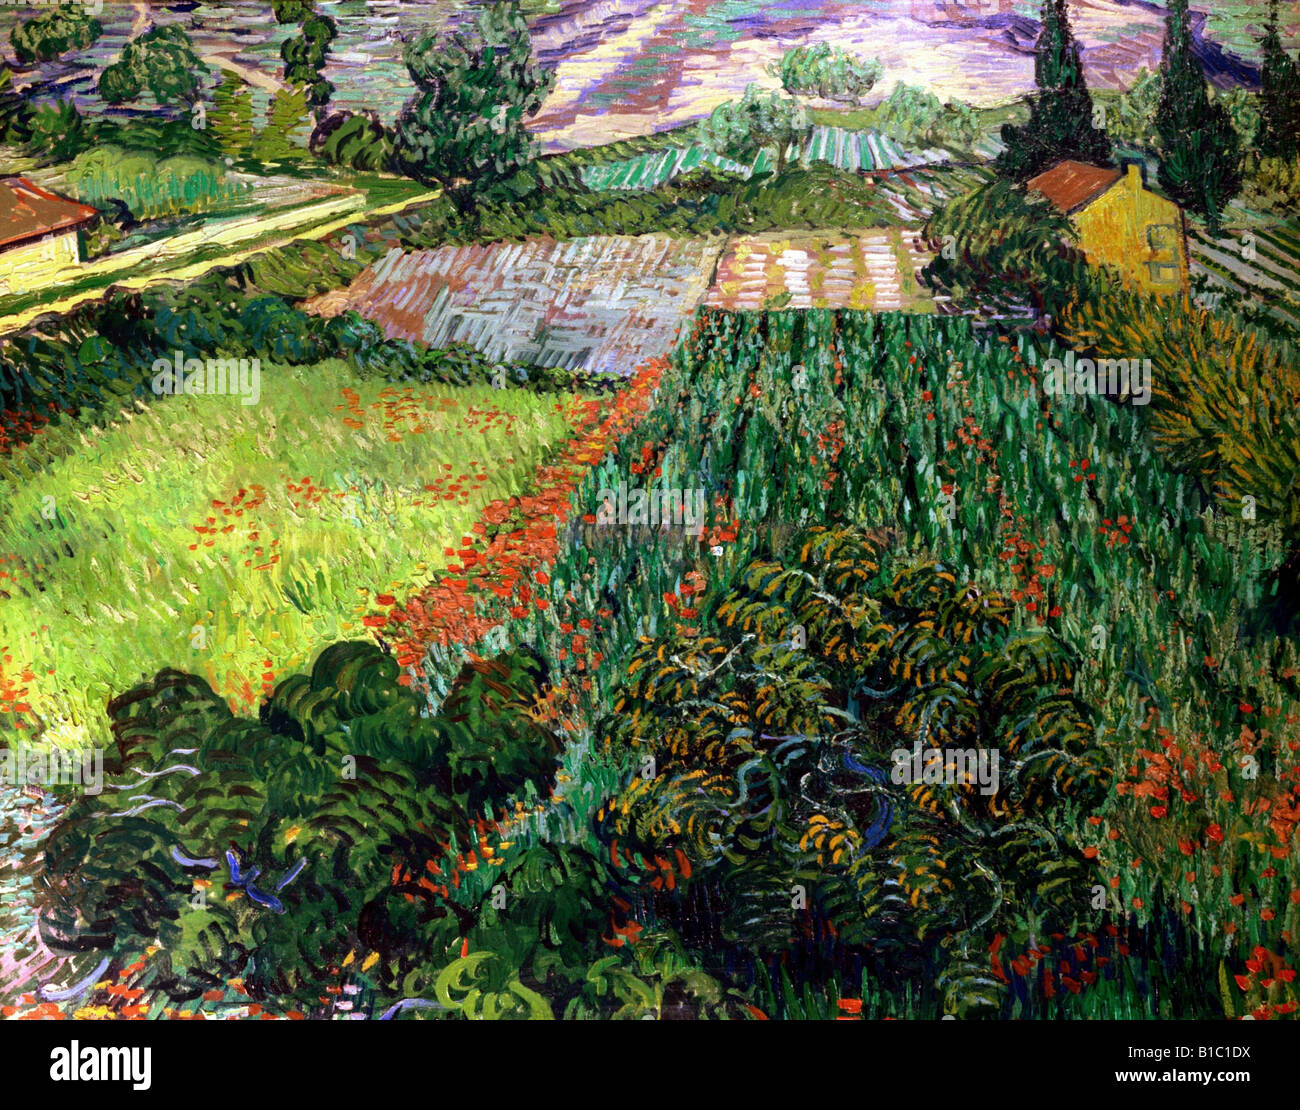 "fine arts, Gogh, Vincent van, (1853 - 1890), painting, ""poppy field,"", 1889 / 1890, oil on canvas, 71 cm x 91 cm, Stock Photo"